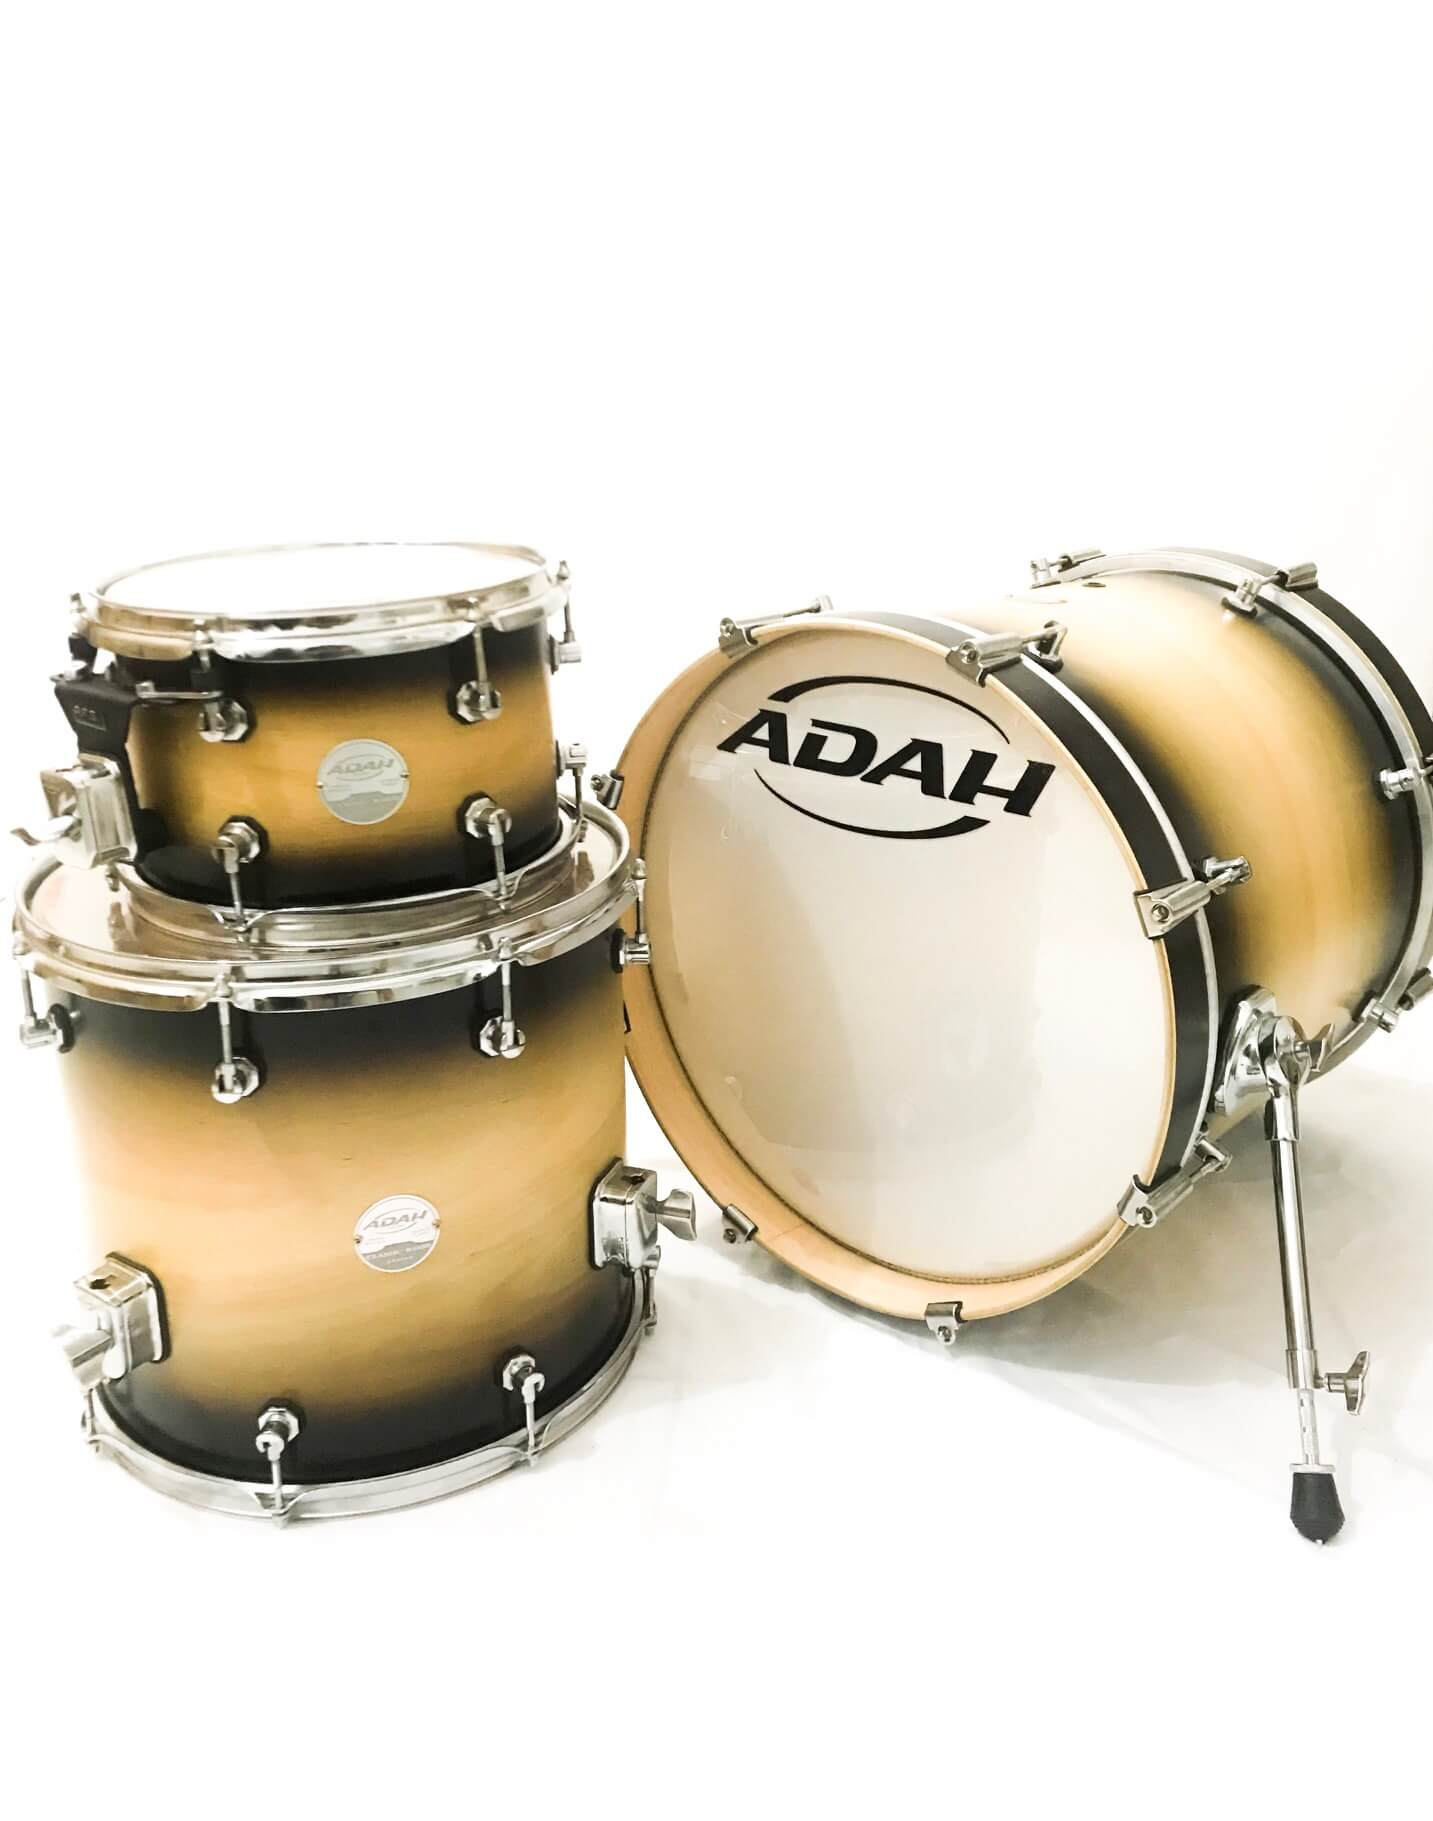 Bateria Adah Classic Wood 10/14/18 Shell Pack - SP DRUMS